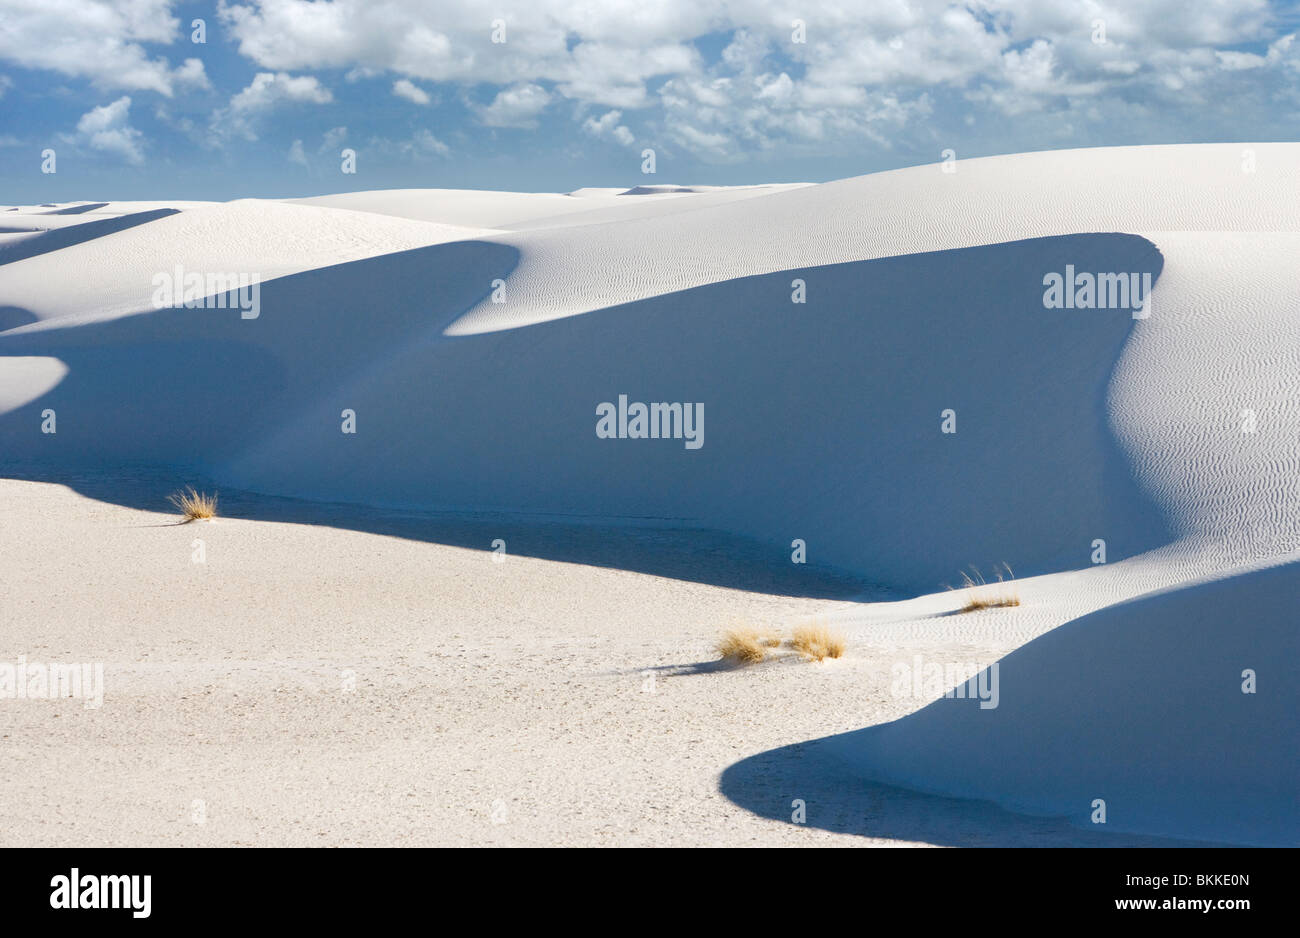 A person walking up a large white sand dune at White Sands National Monument, New Mexico. - Stock Image